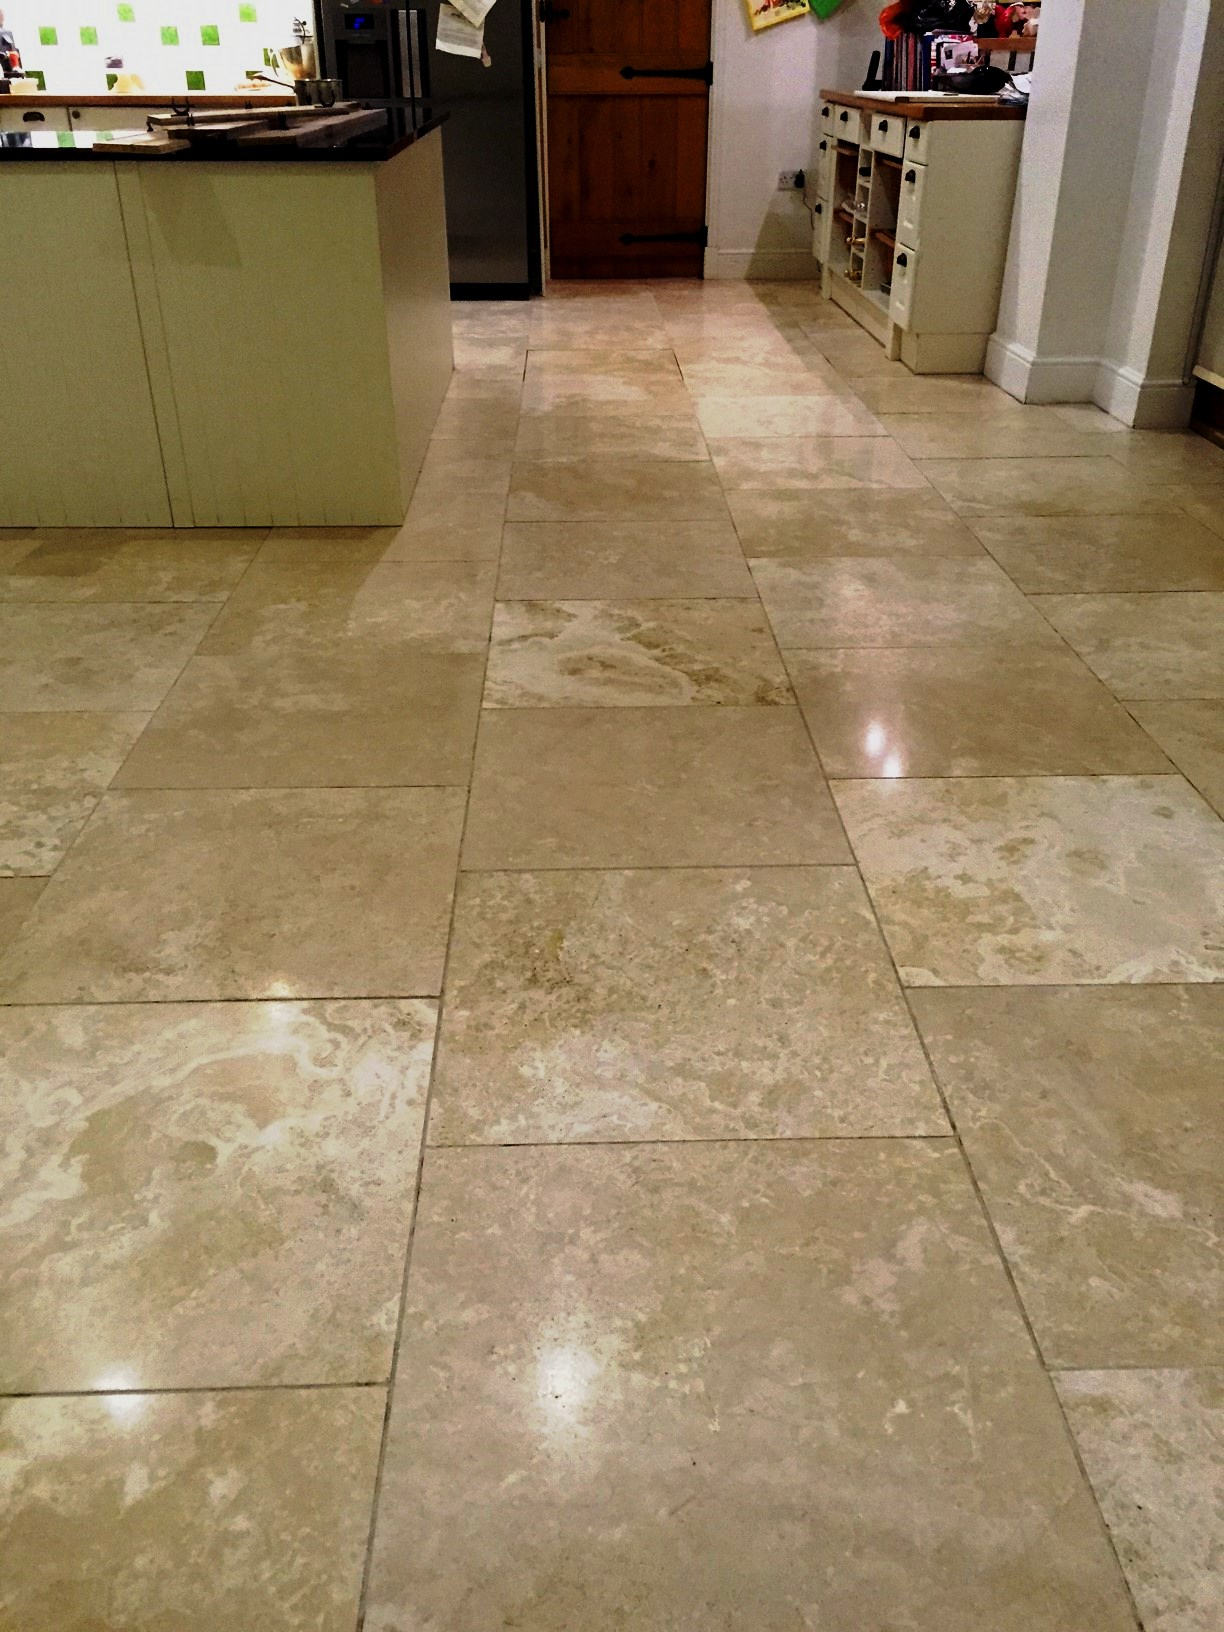 Travertine posts stone cleaning and polishing tips for for Kitchen and floor tiles